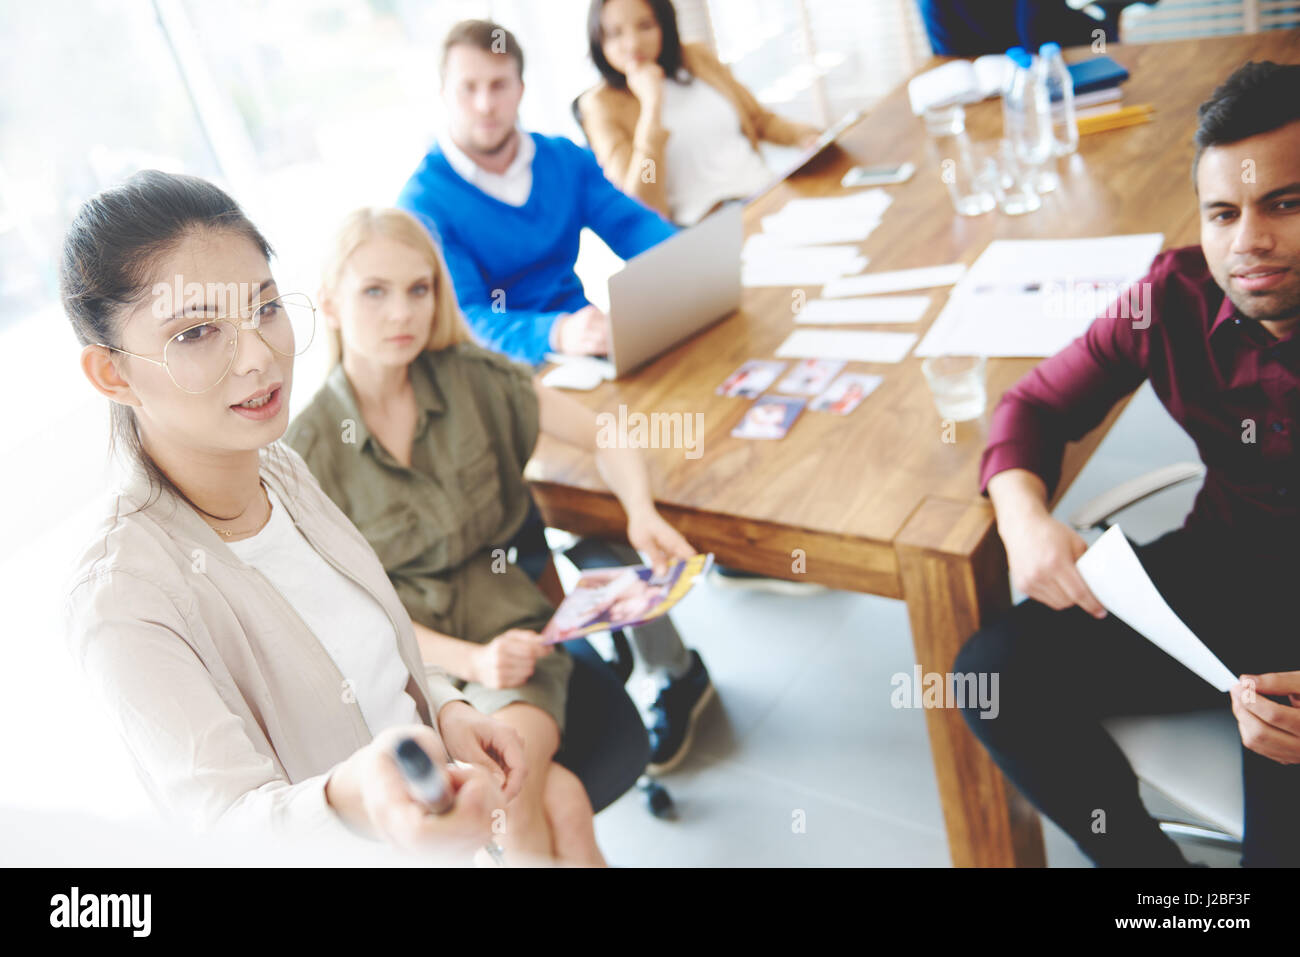 Brainstorming of young business people - Stock Image